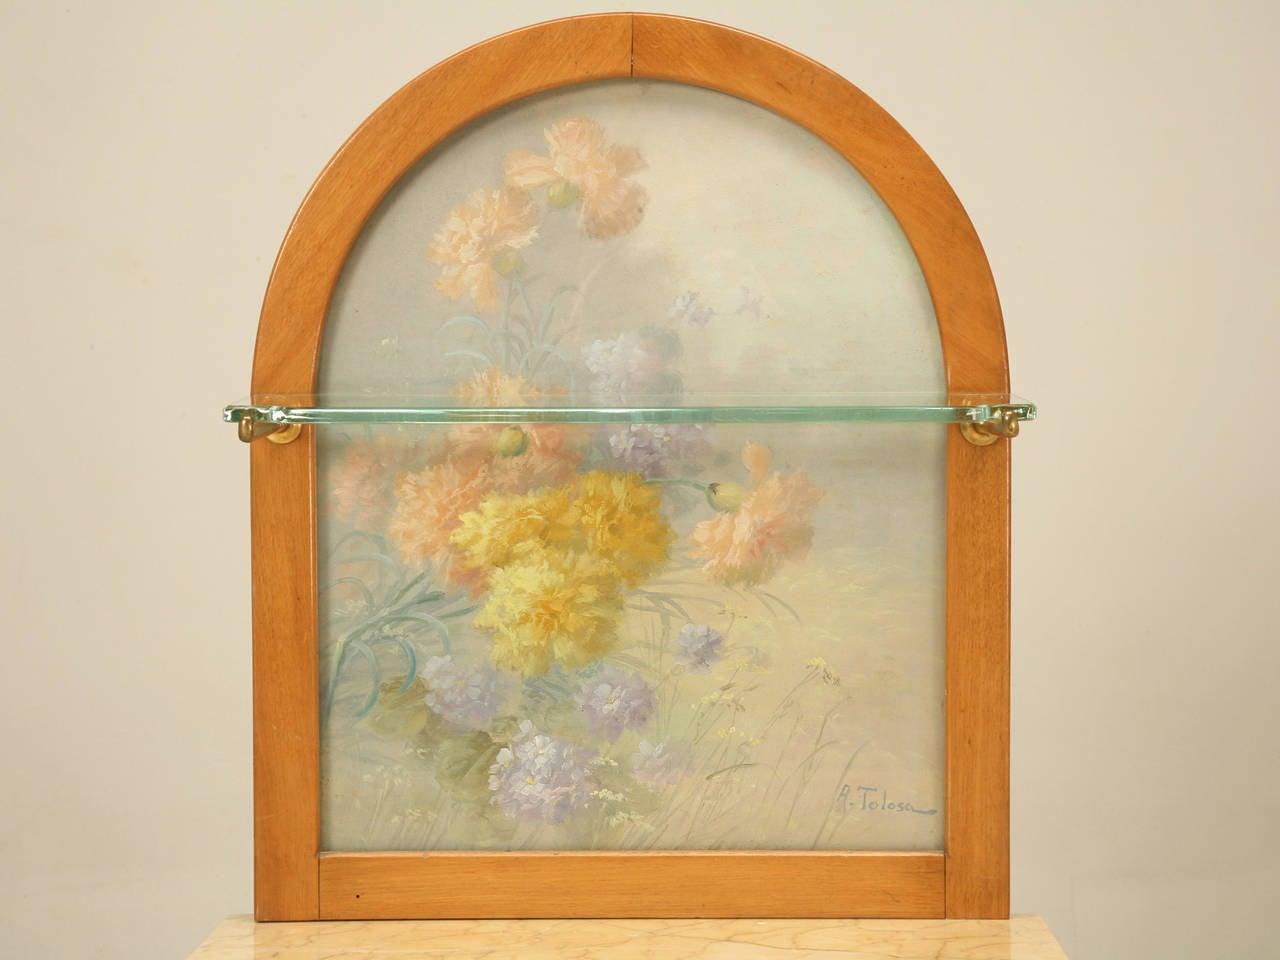 The flowers you see behind the glass were painted by Tolosa-Alina,  who was a well known Spanish painter and lived from 1861-1938. The cabinet was originally used in a bathroom and is in absolutely beautiful all original condition. Could also double